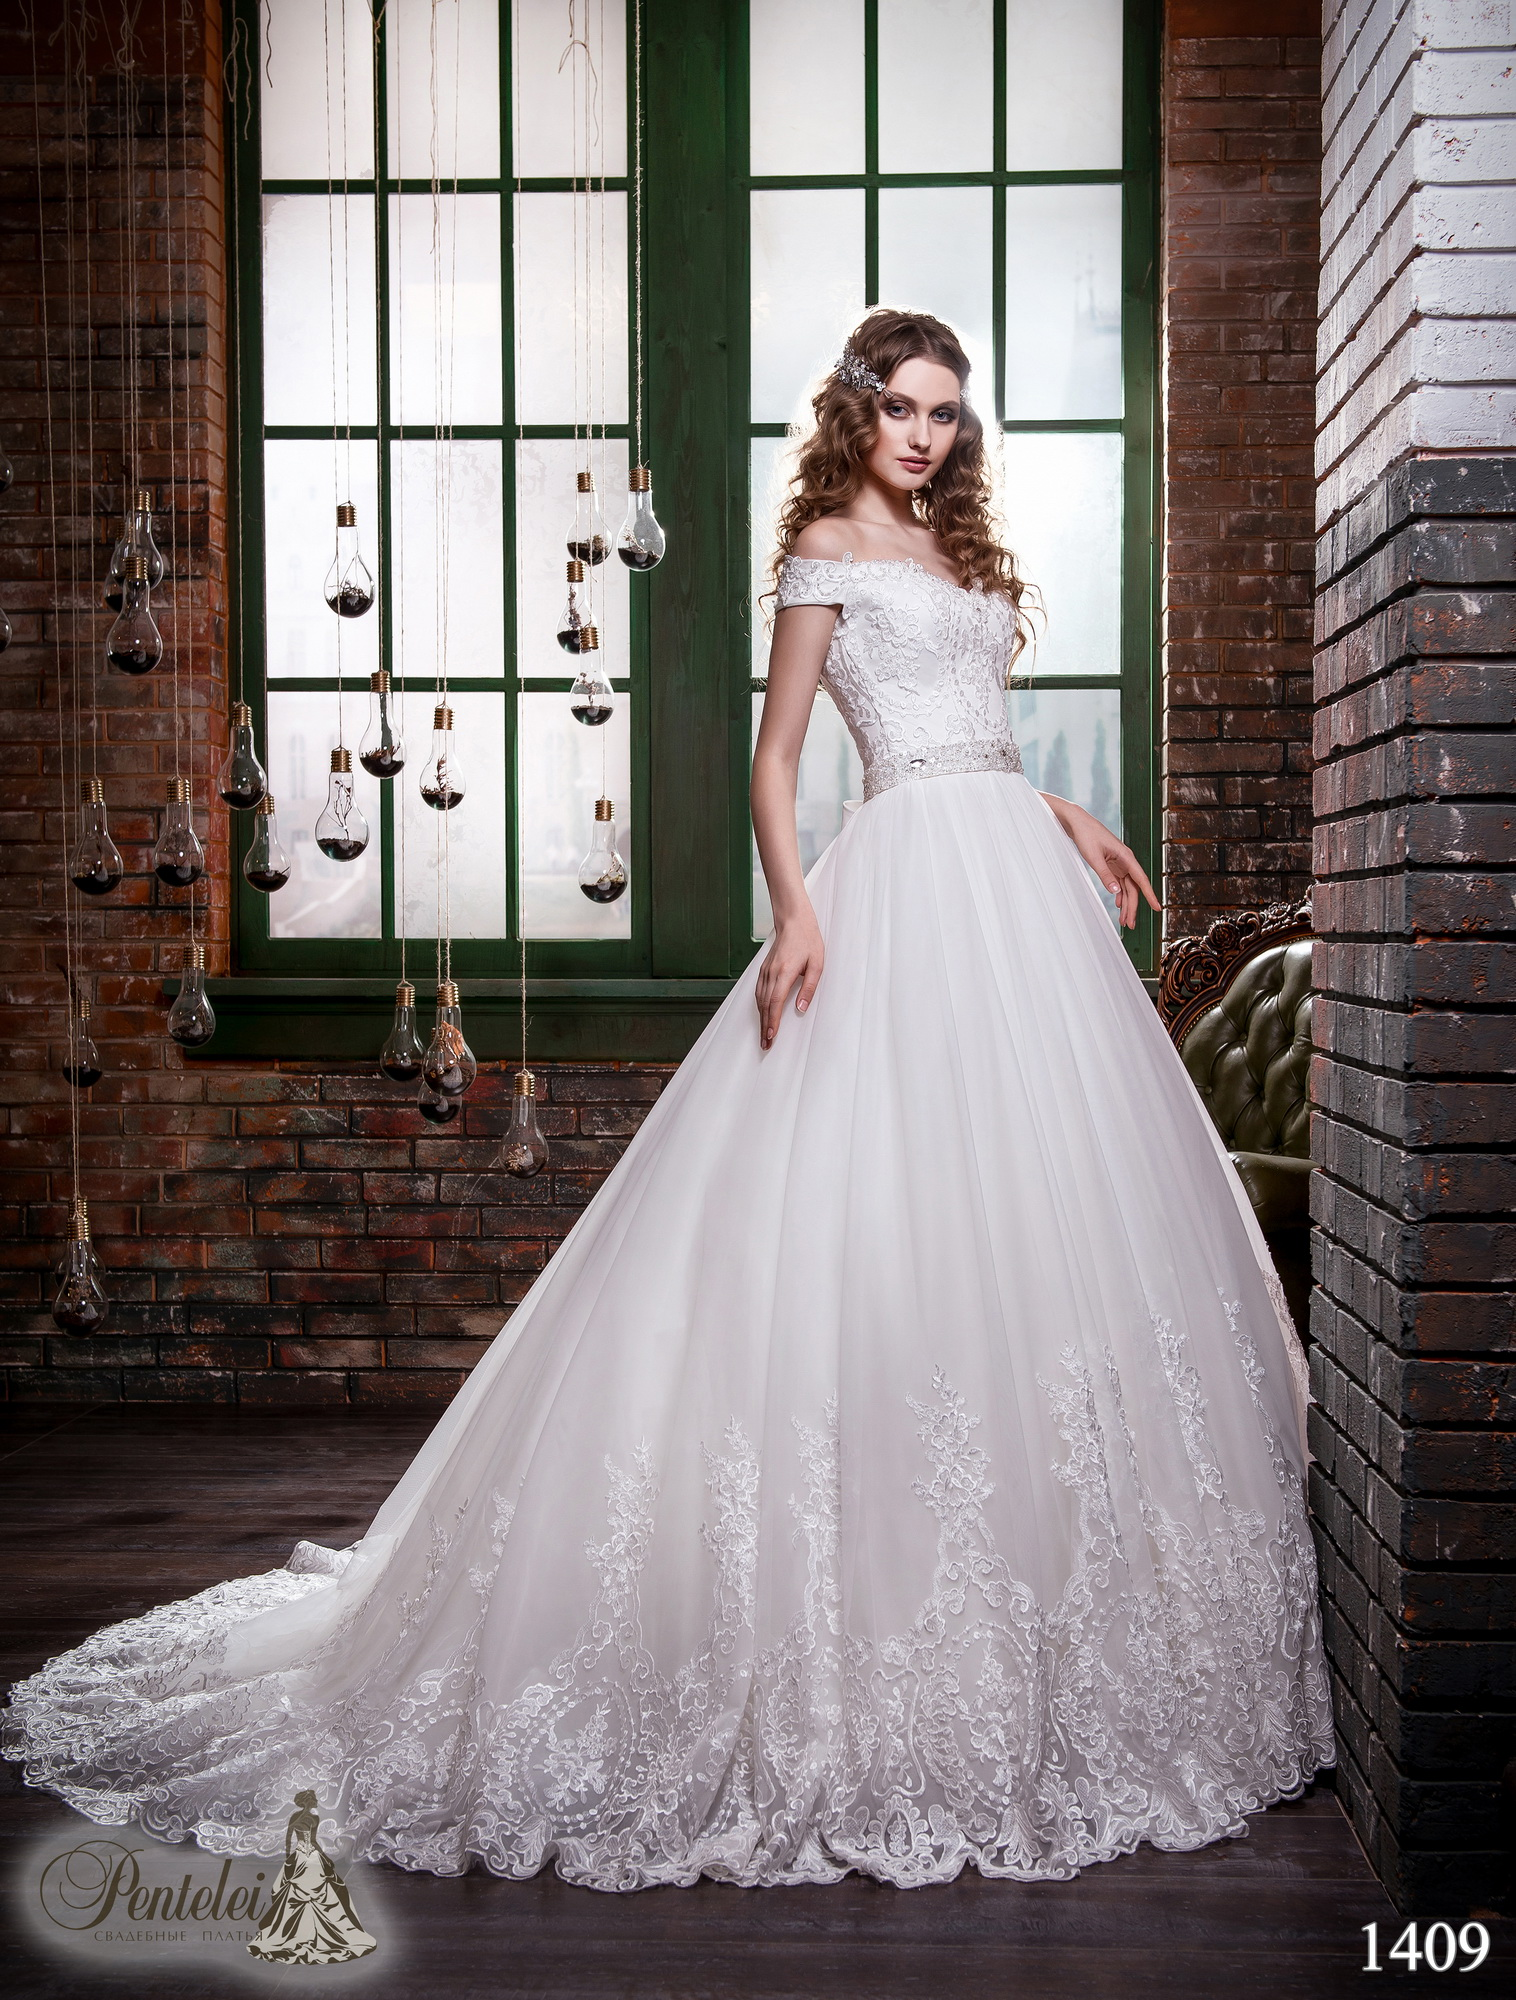 1409 | Buy wedding dresses wholesale from Pentelei